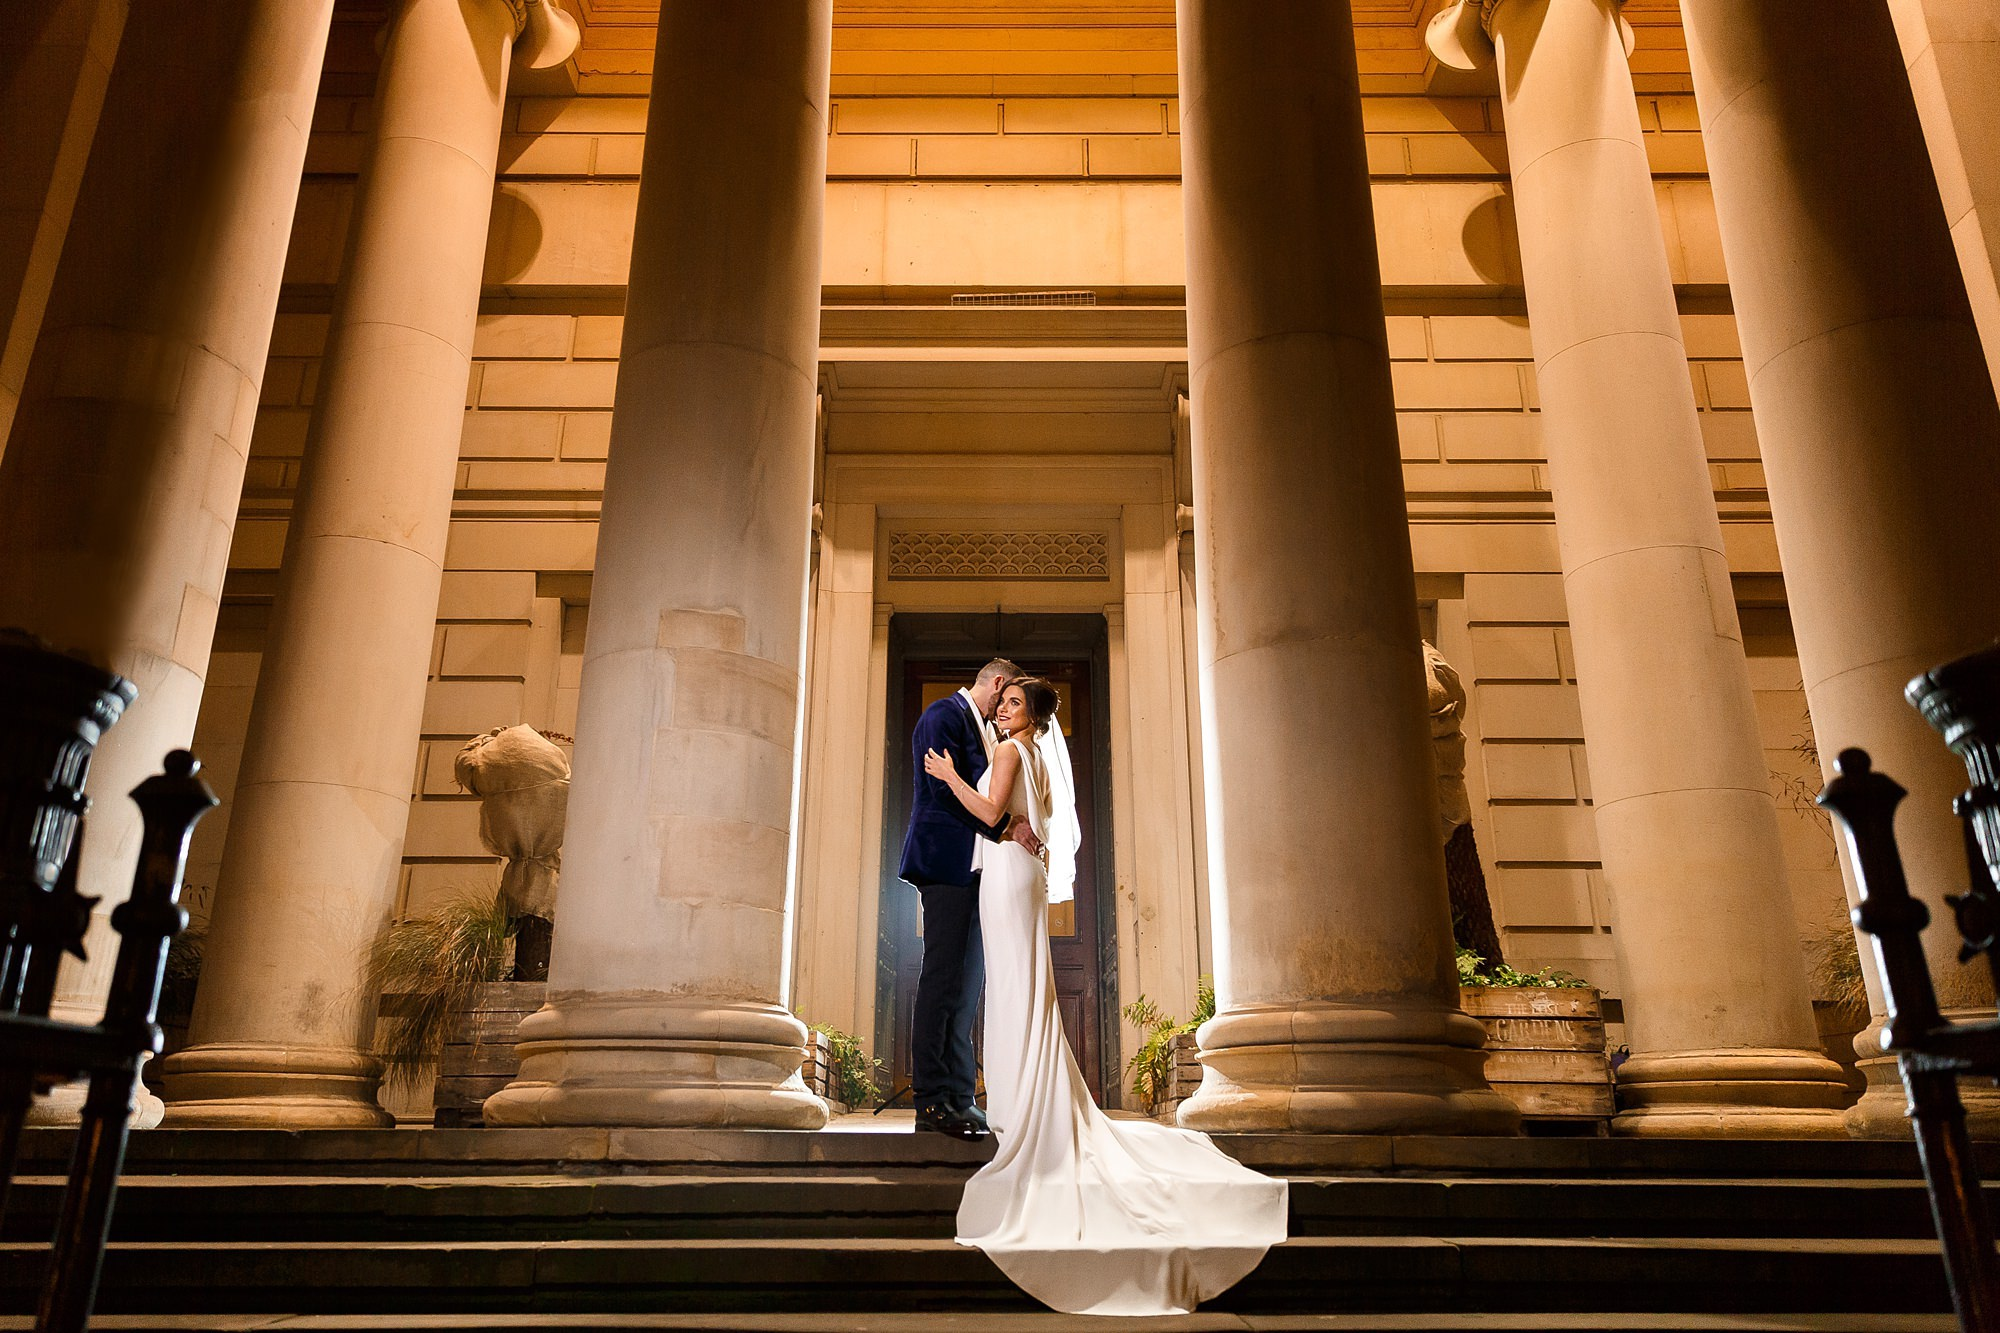 Real Wedding: James and Rebecca's wedding at Manchester Art Gallery